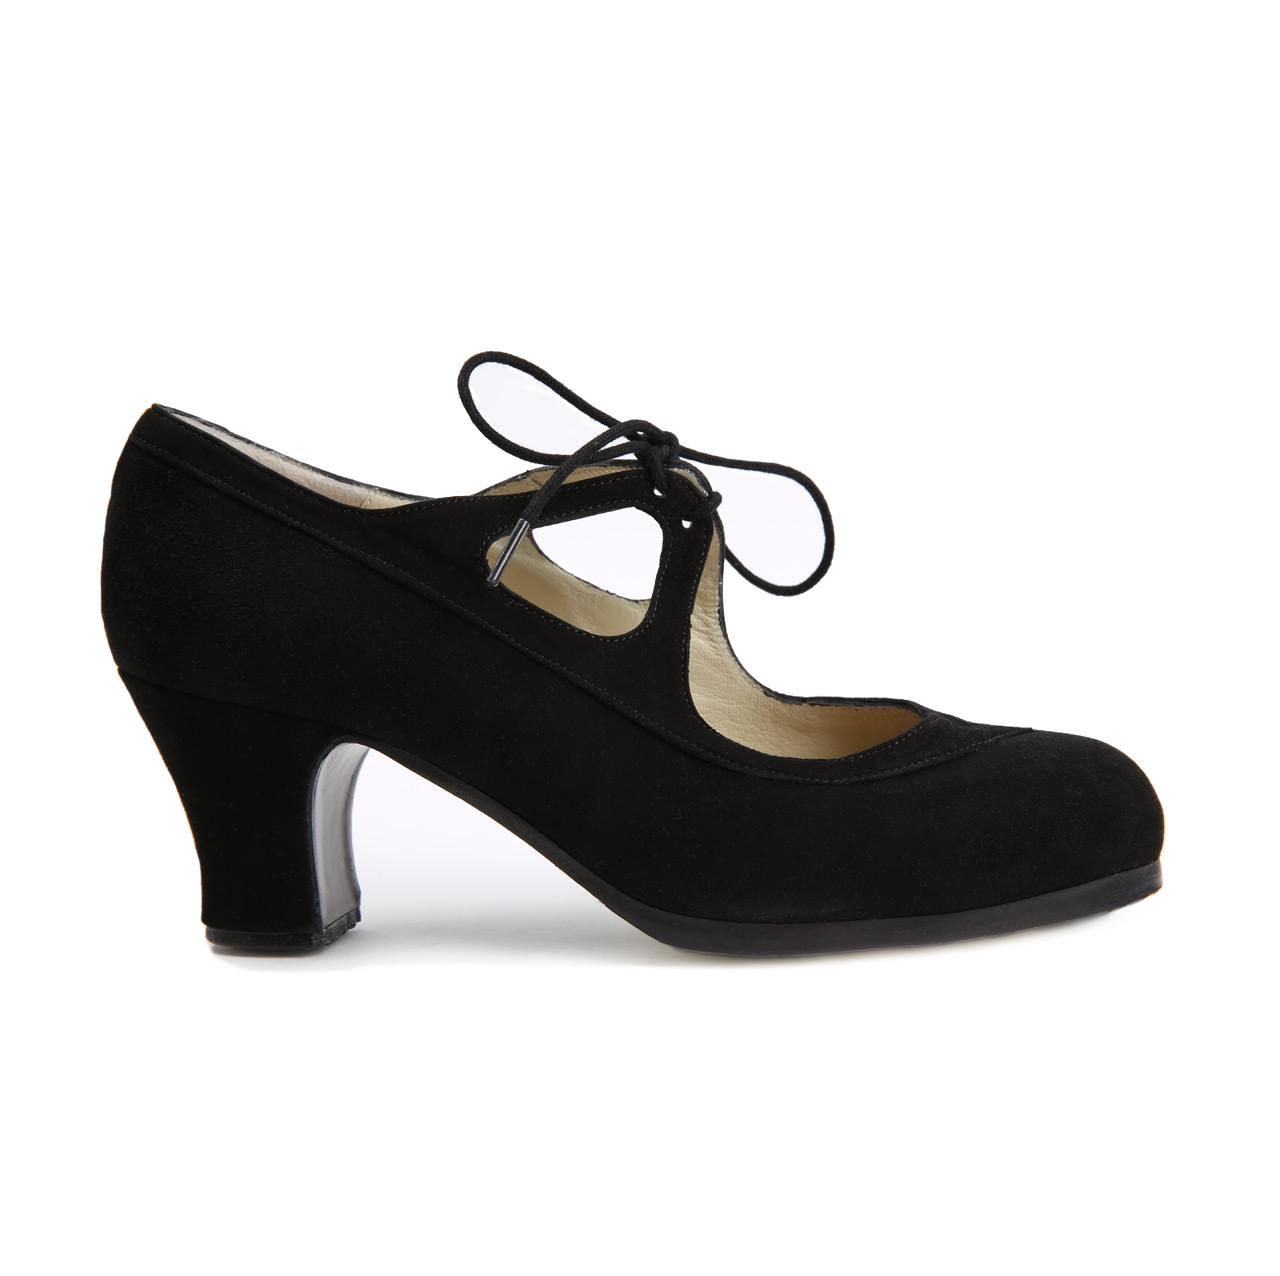 Flamenco dance Shoe Candor Suède Black